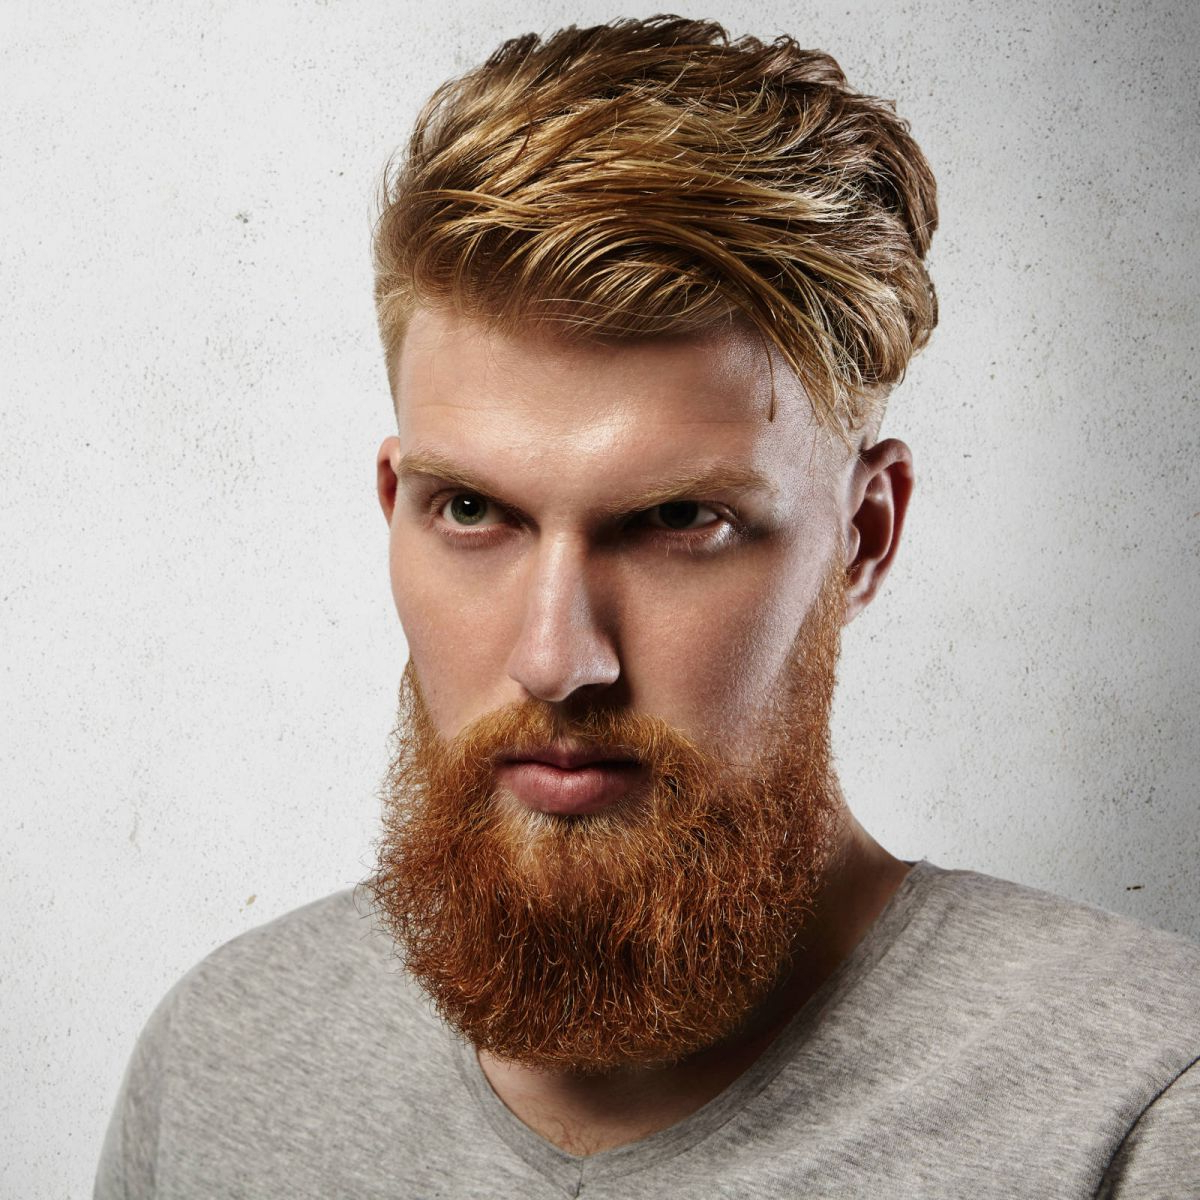 21 Eye Catching Red Hair Men's Hairstyles (Ginger Hairstyles) Pertaining To Tapered Brown Pixie Hairstyles With Ginger Curls (View 2 of 20)